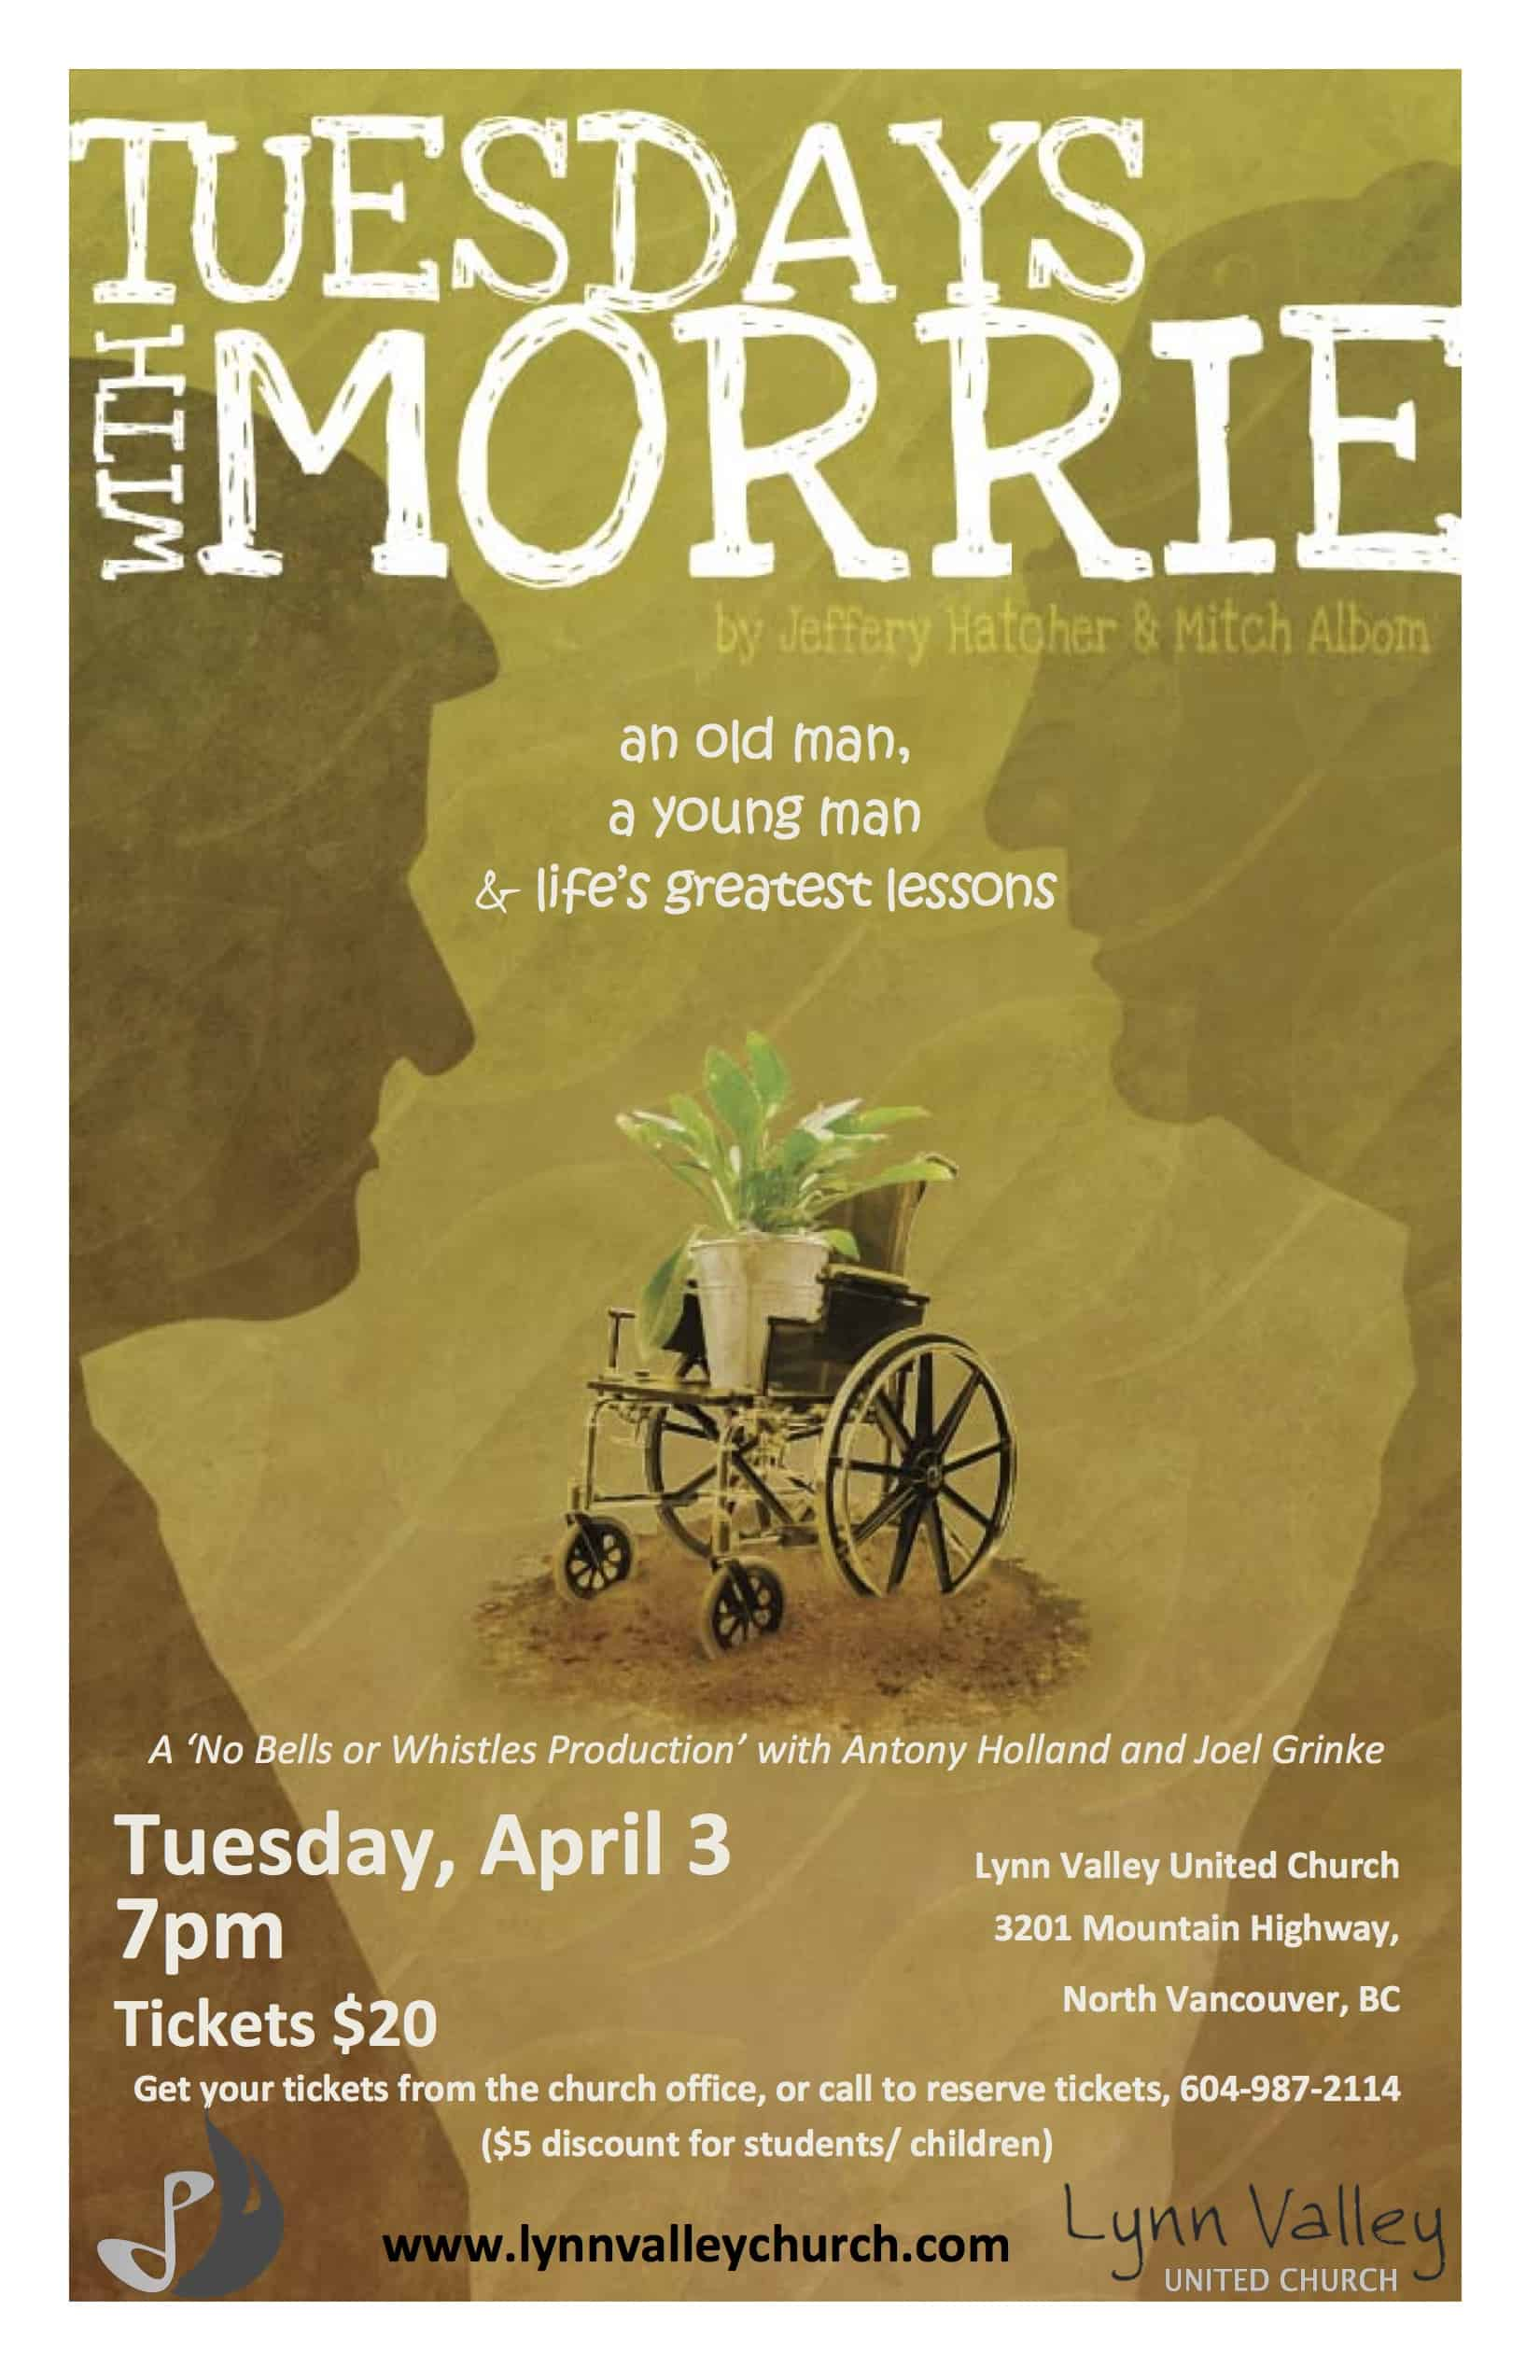 Tuesdays with Morrie: live-theatre treat comes to Lynn Valley!